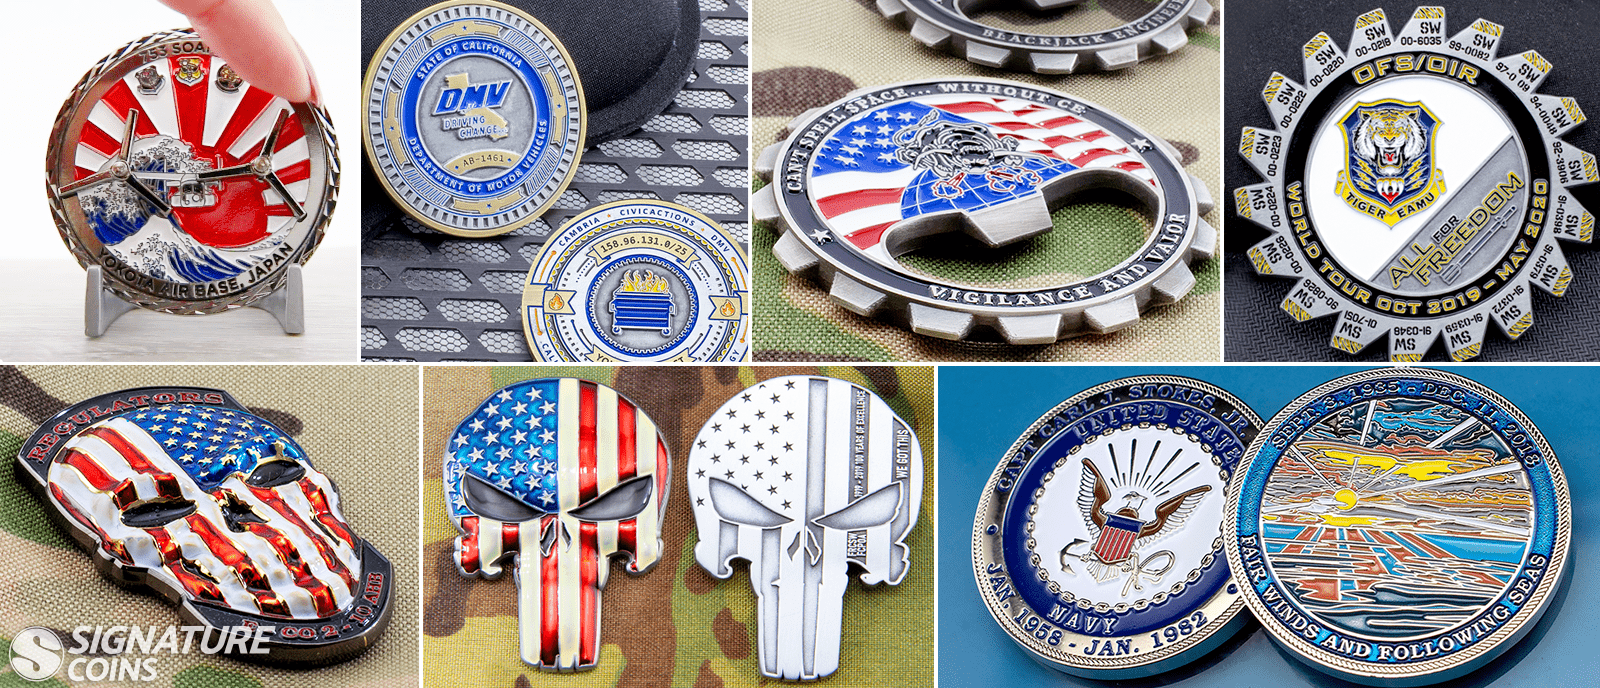 How Long Does It Take to Make a Challenge Coin - Spinner - bottle opener - custom edge - 3D coin - translucent